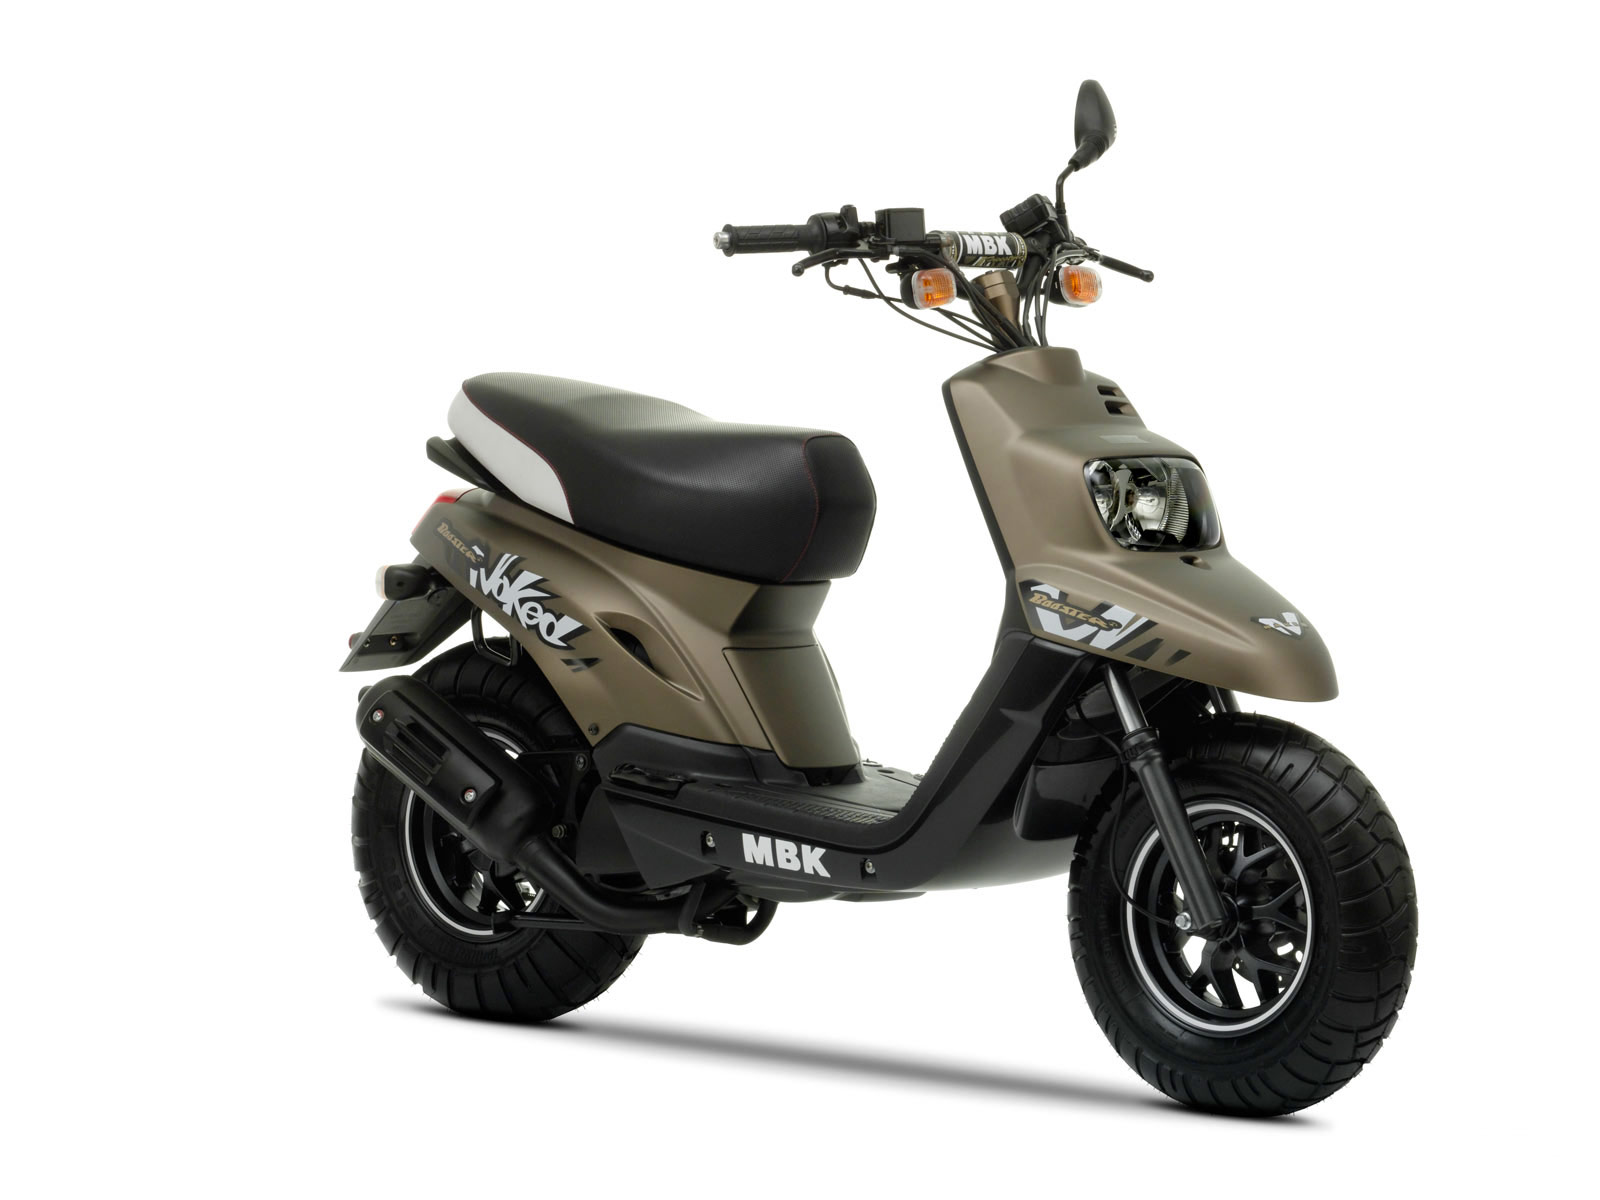 2009 mbk booster naked scooter pictures insurance info. Black Bedroom Furniture Sets. Home Design Ideas